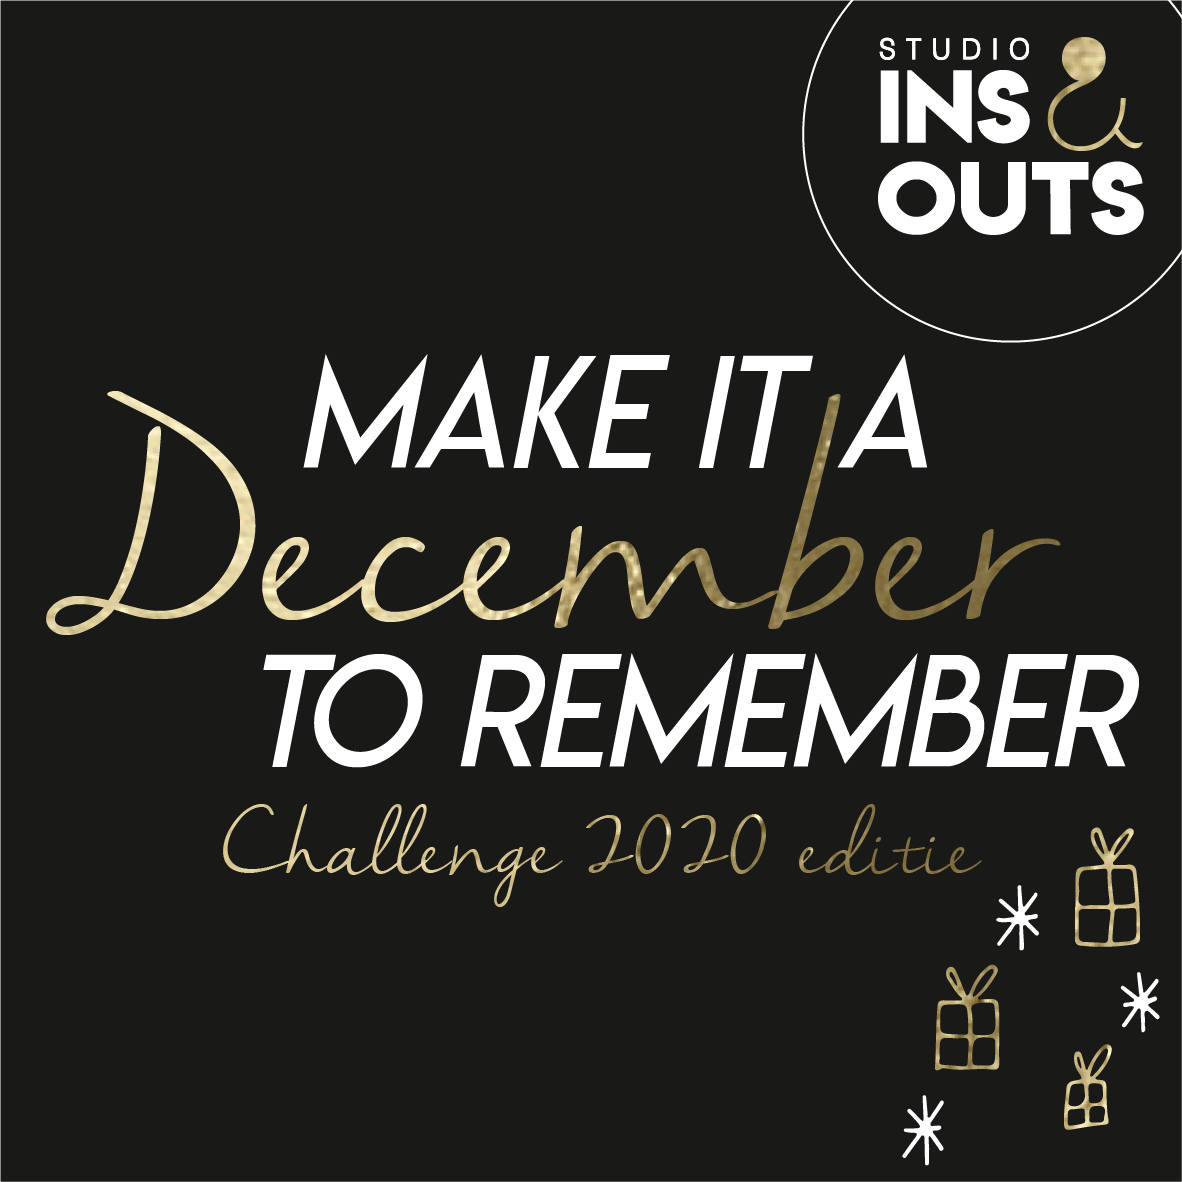 Make it a December to remember - Challenge 2020